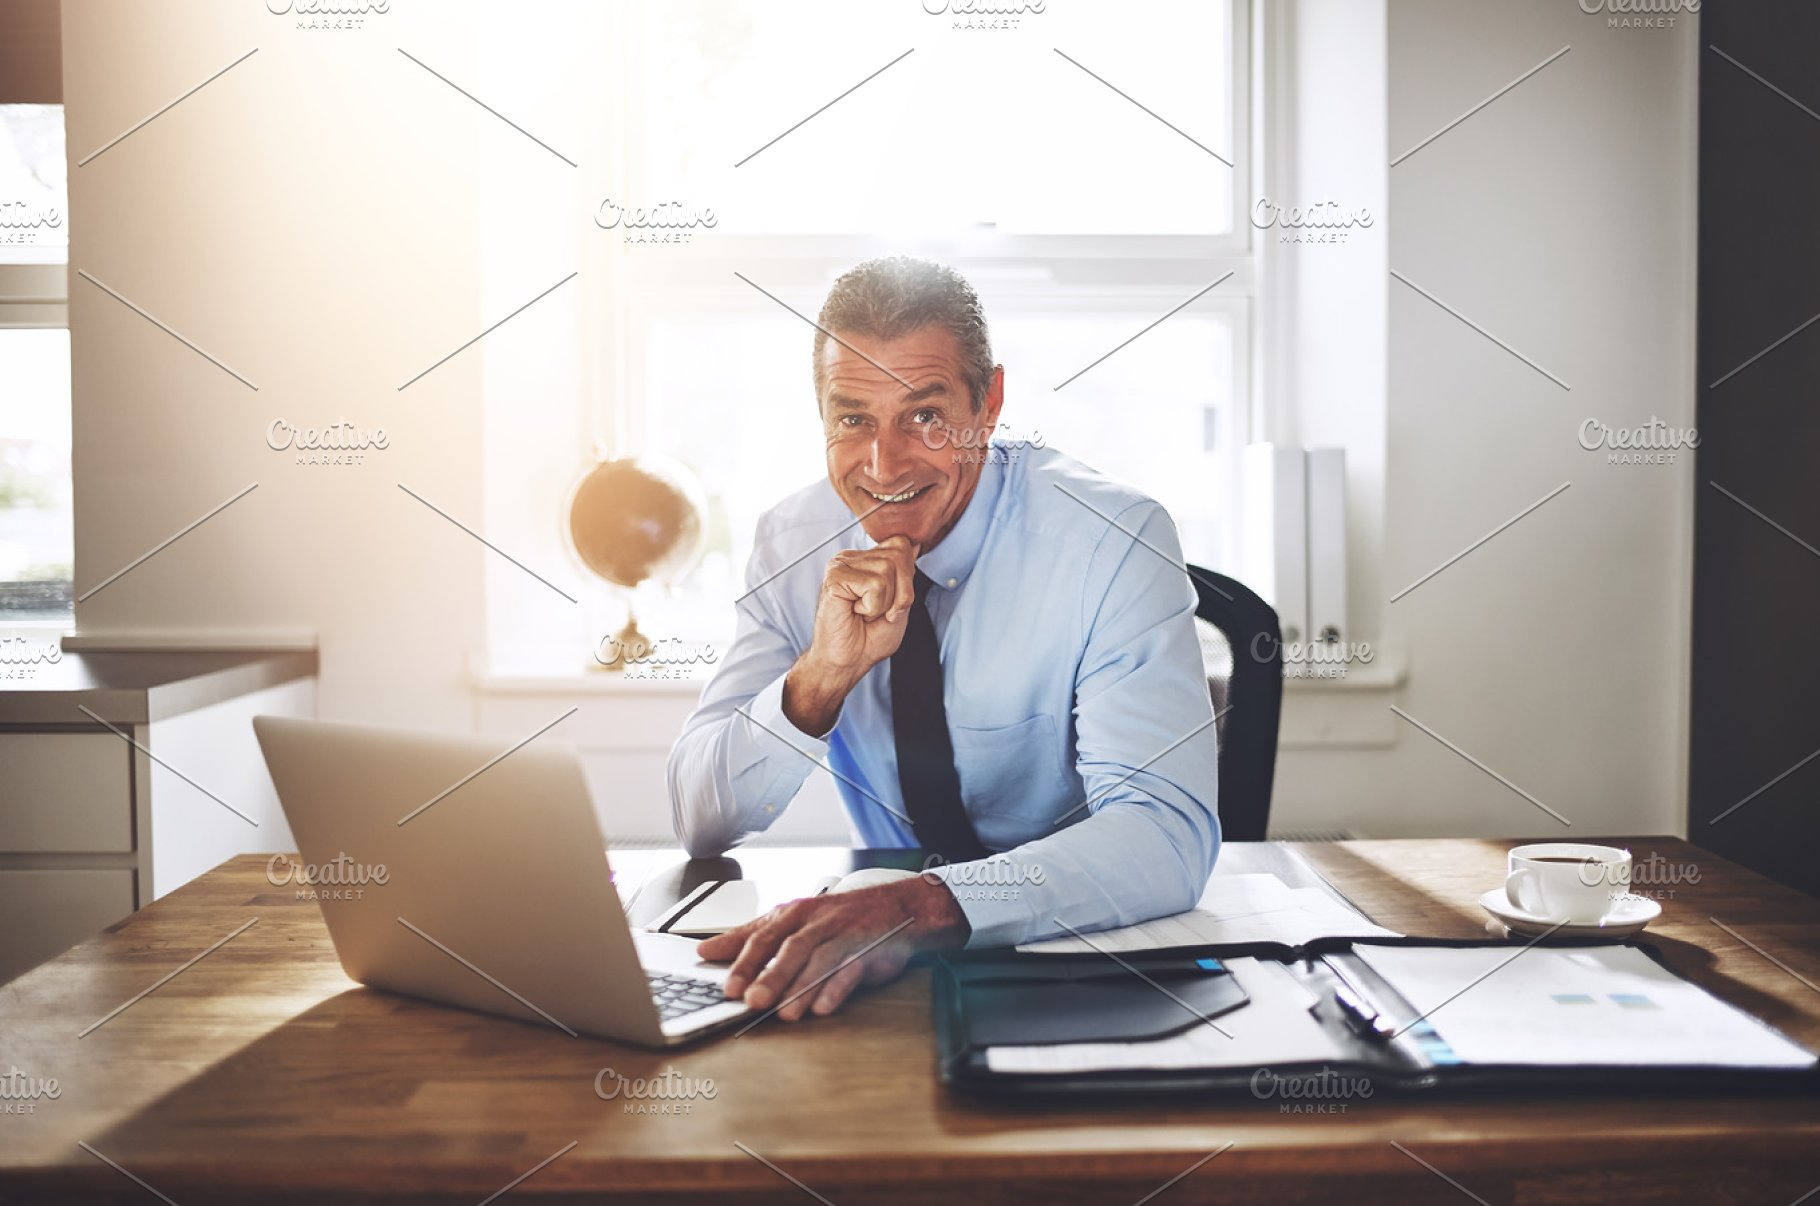 Smiling Businessman Working On A Laptop At His Office Desk